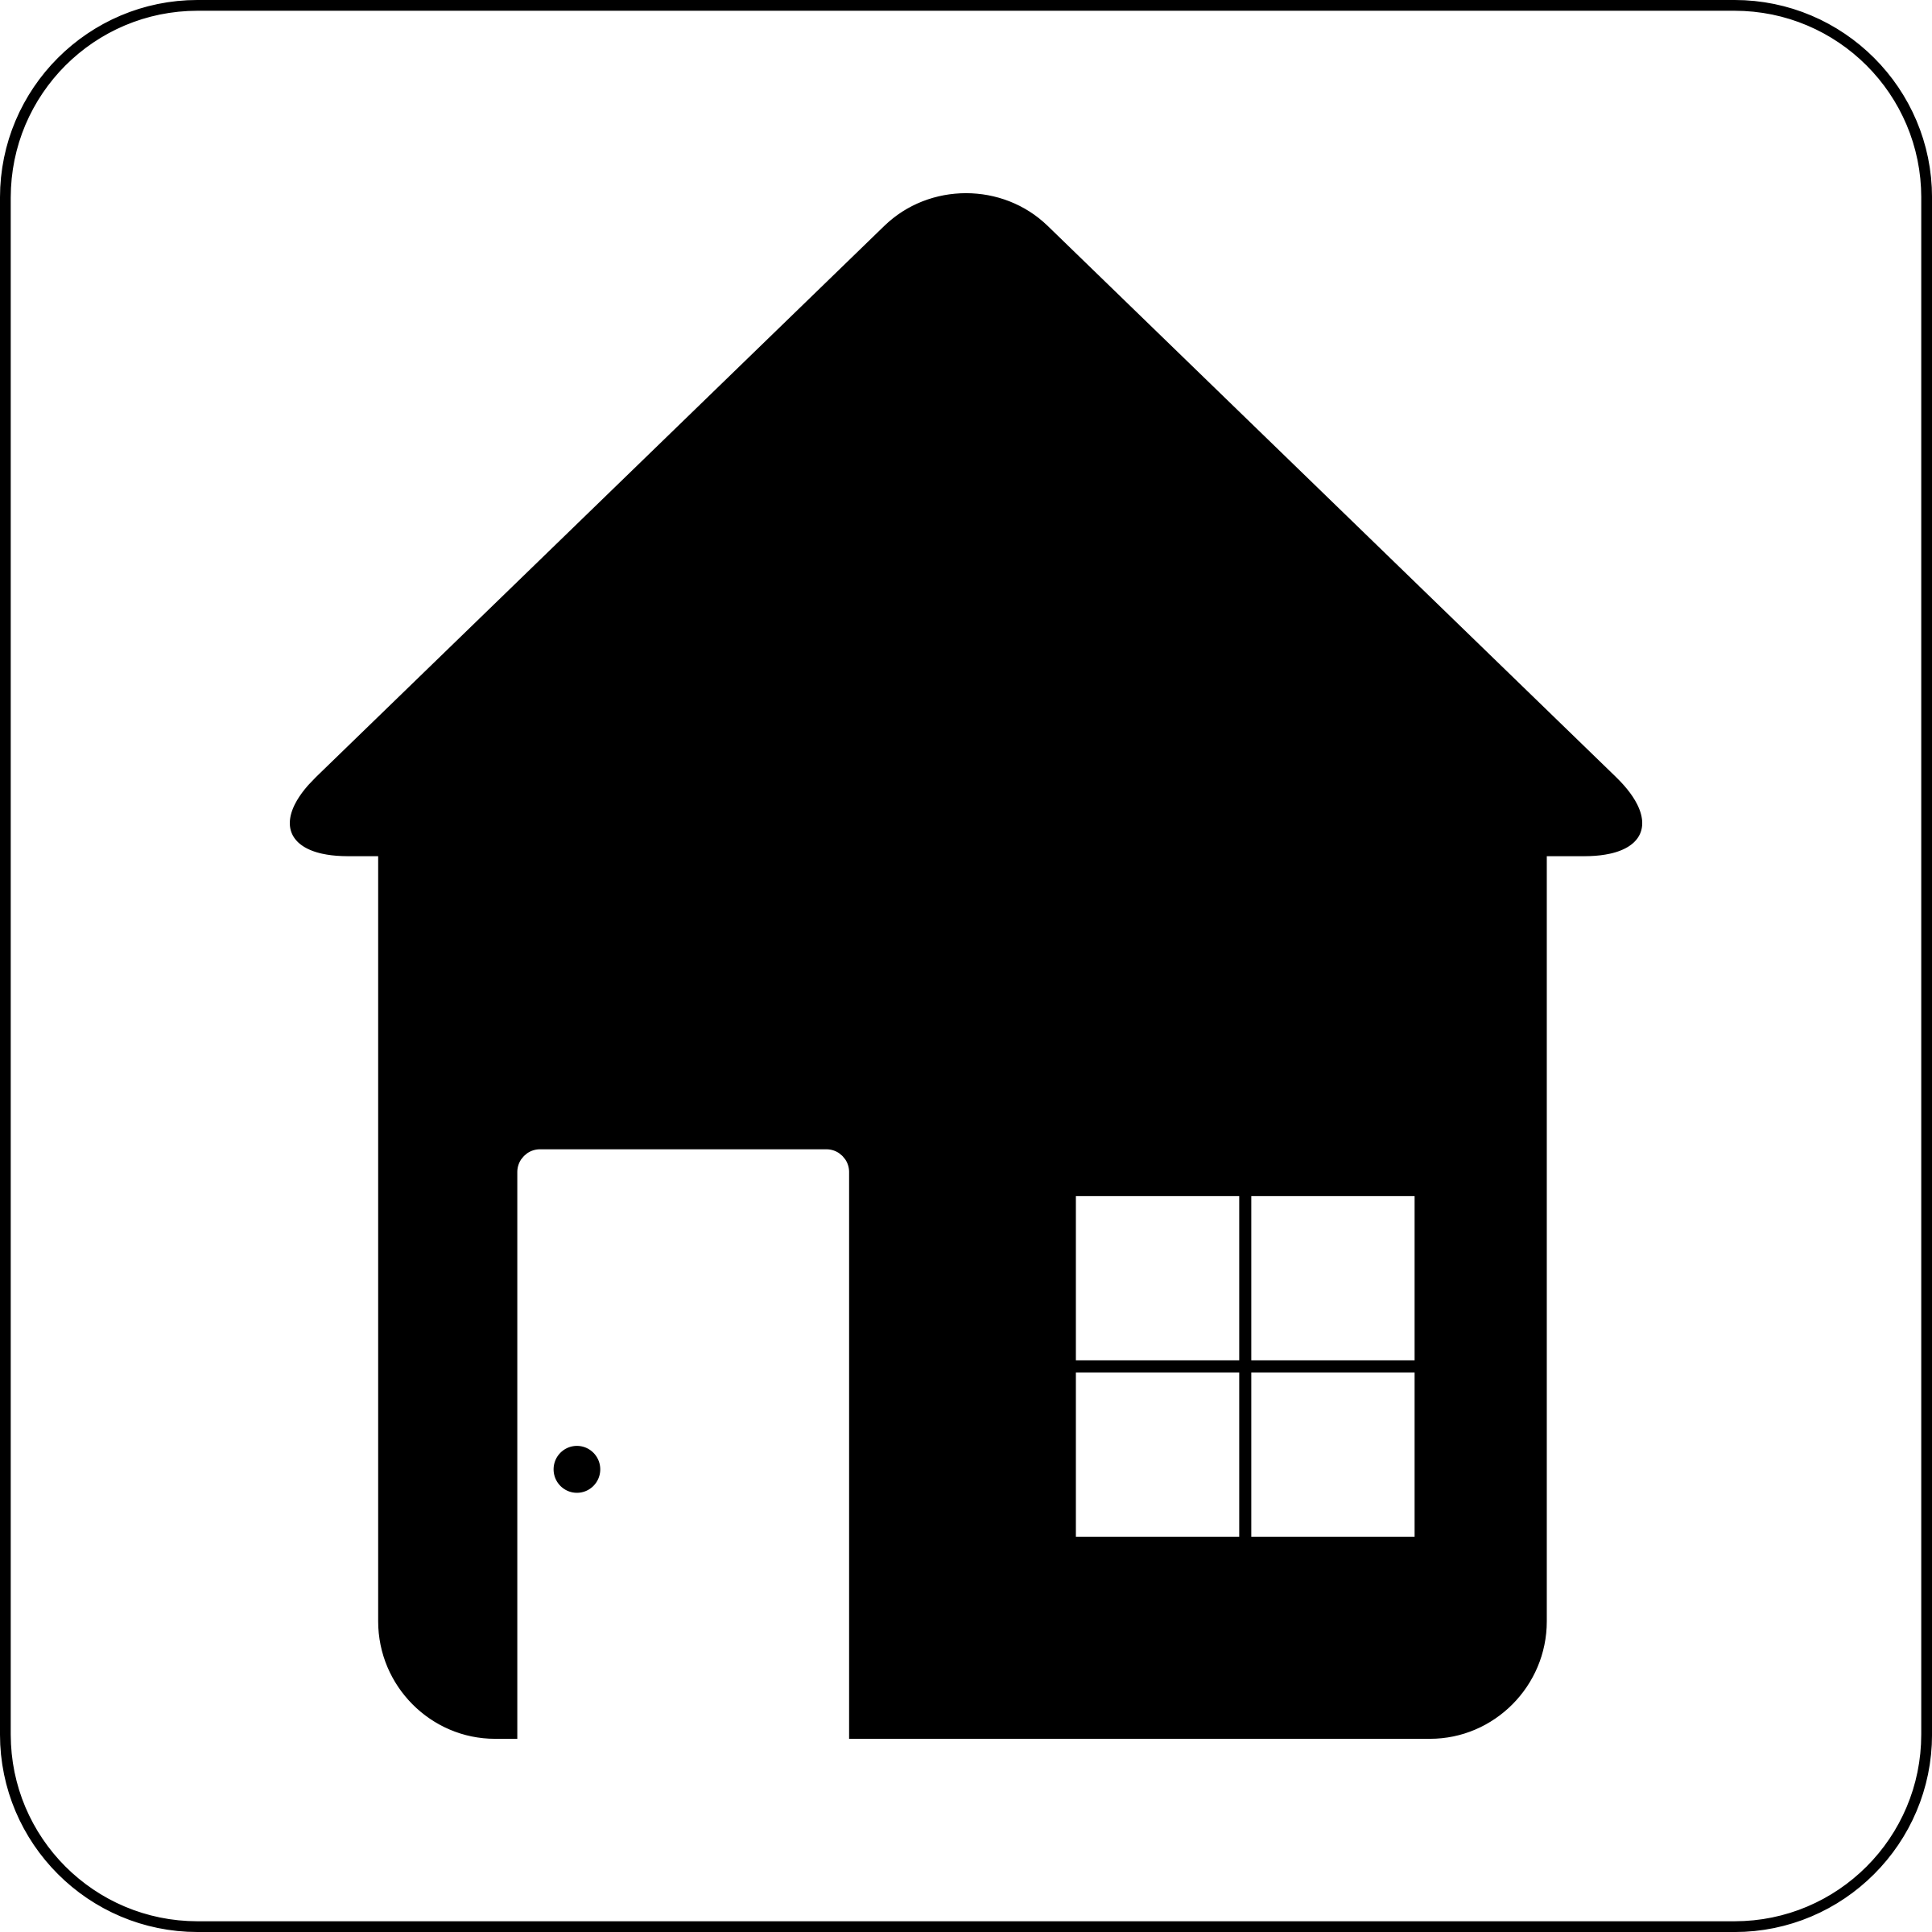 Free Download Of House Icon Clipart #194.